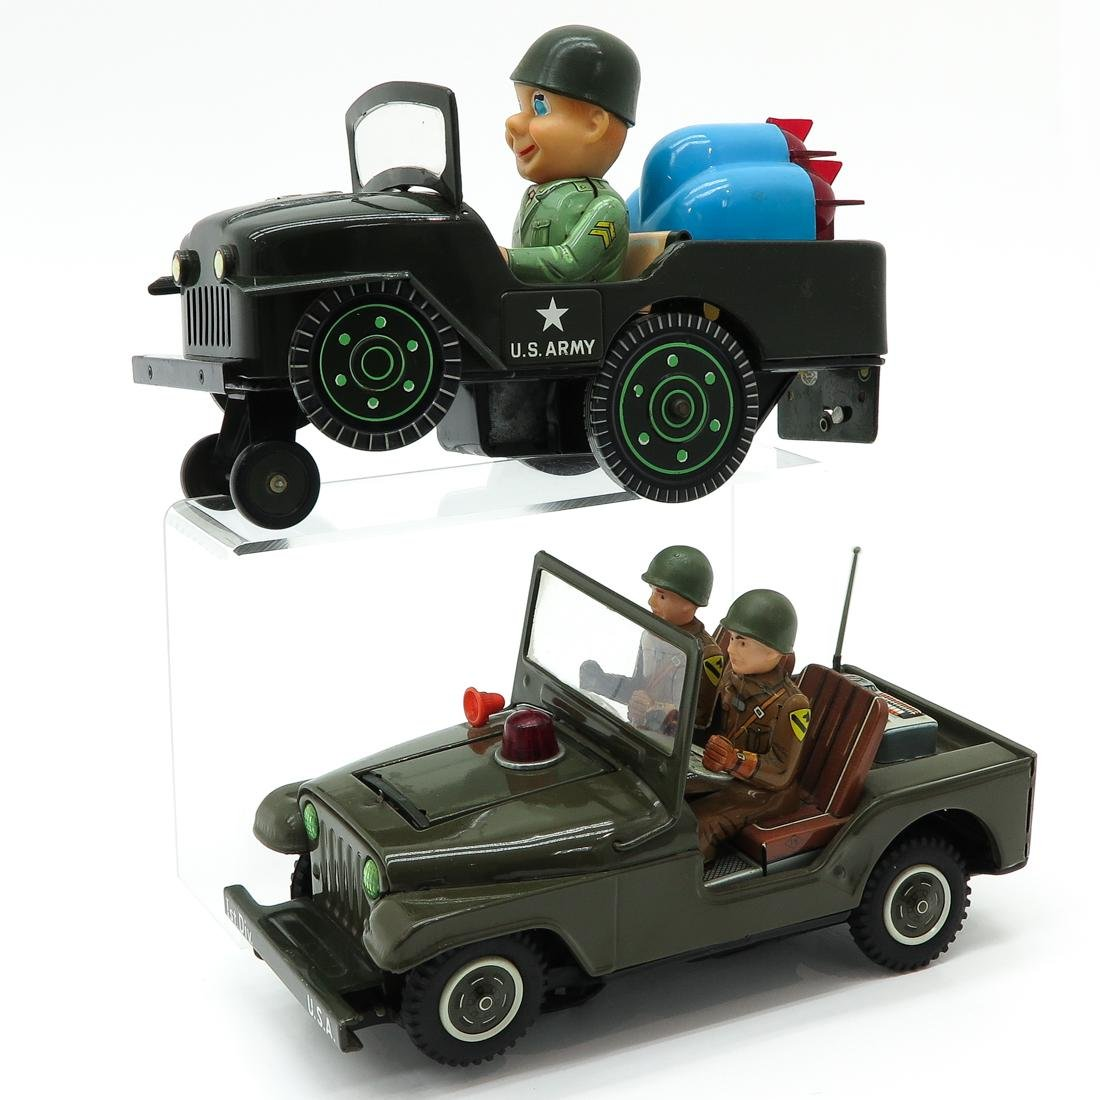 Lot of 2 Vintage Toy Military Vehicles - 2